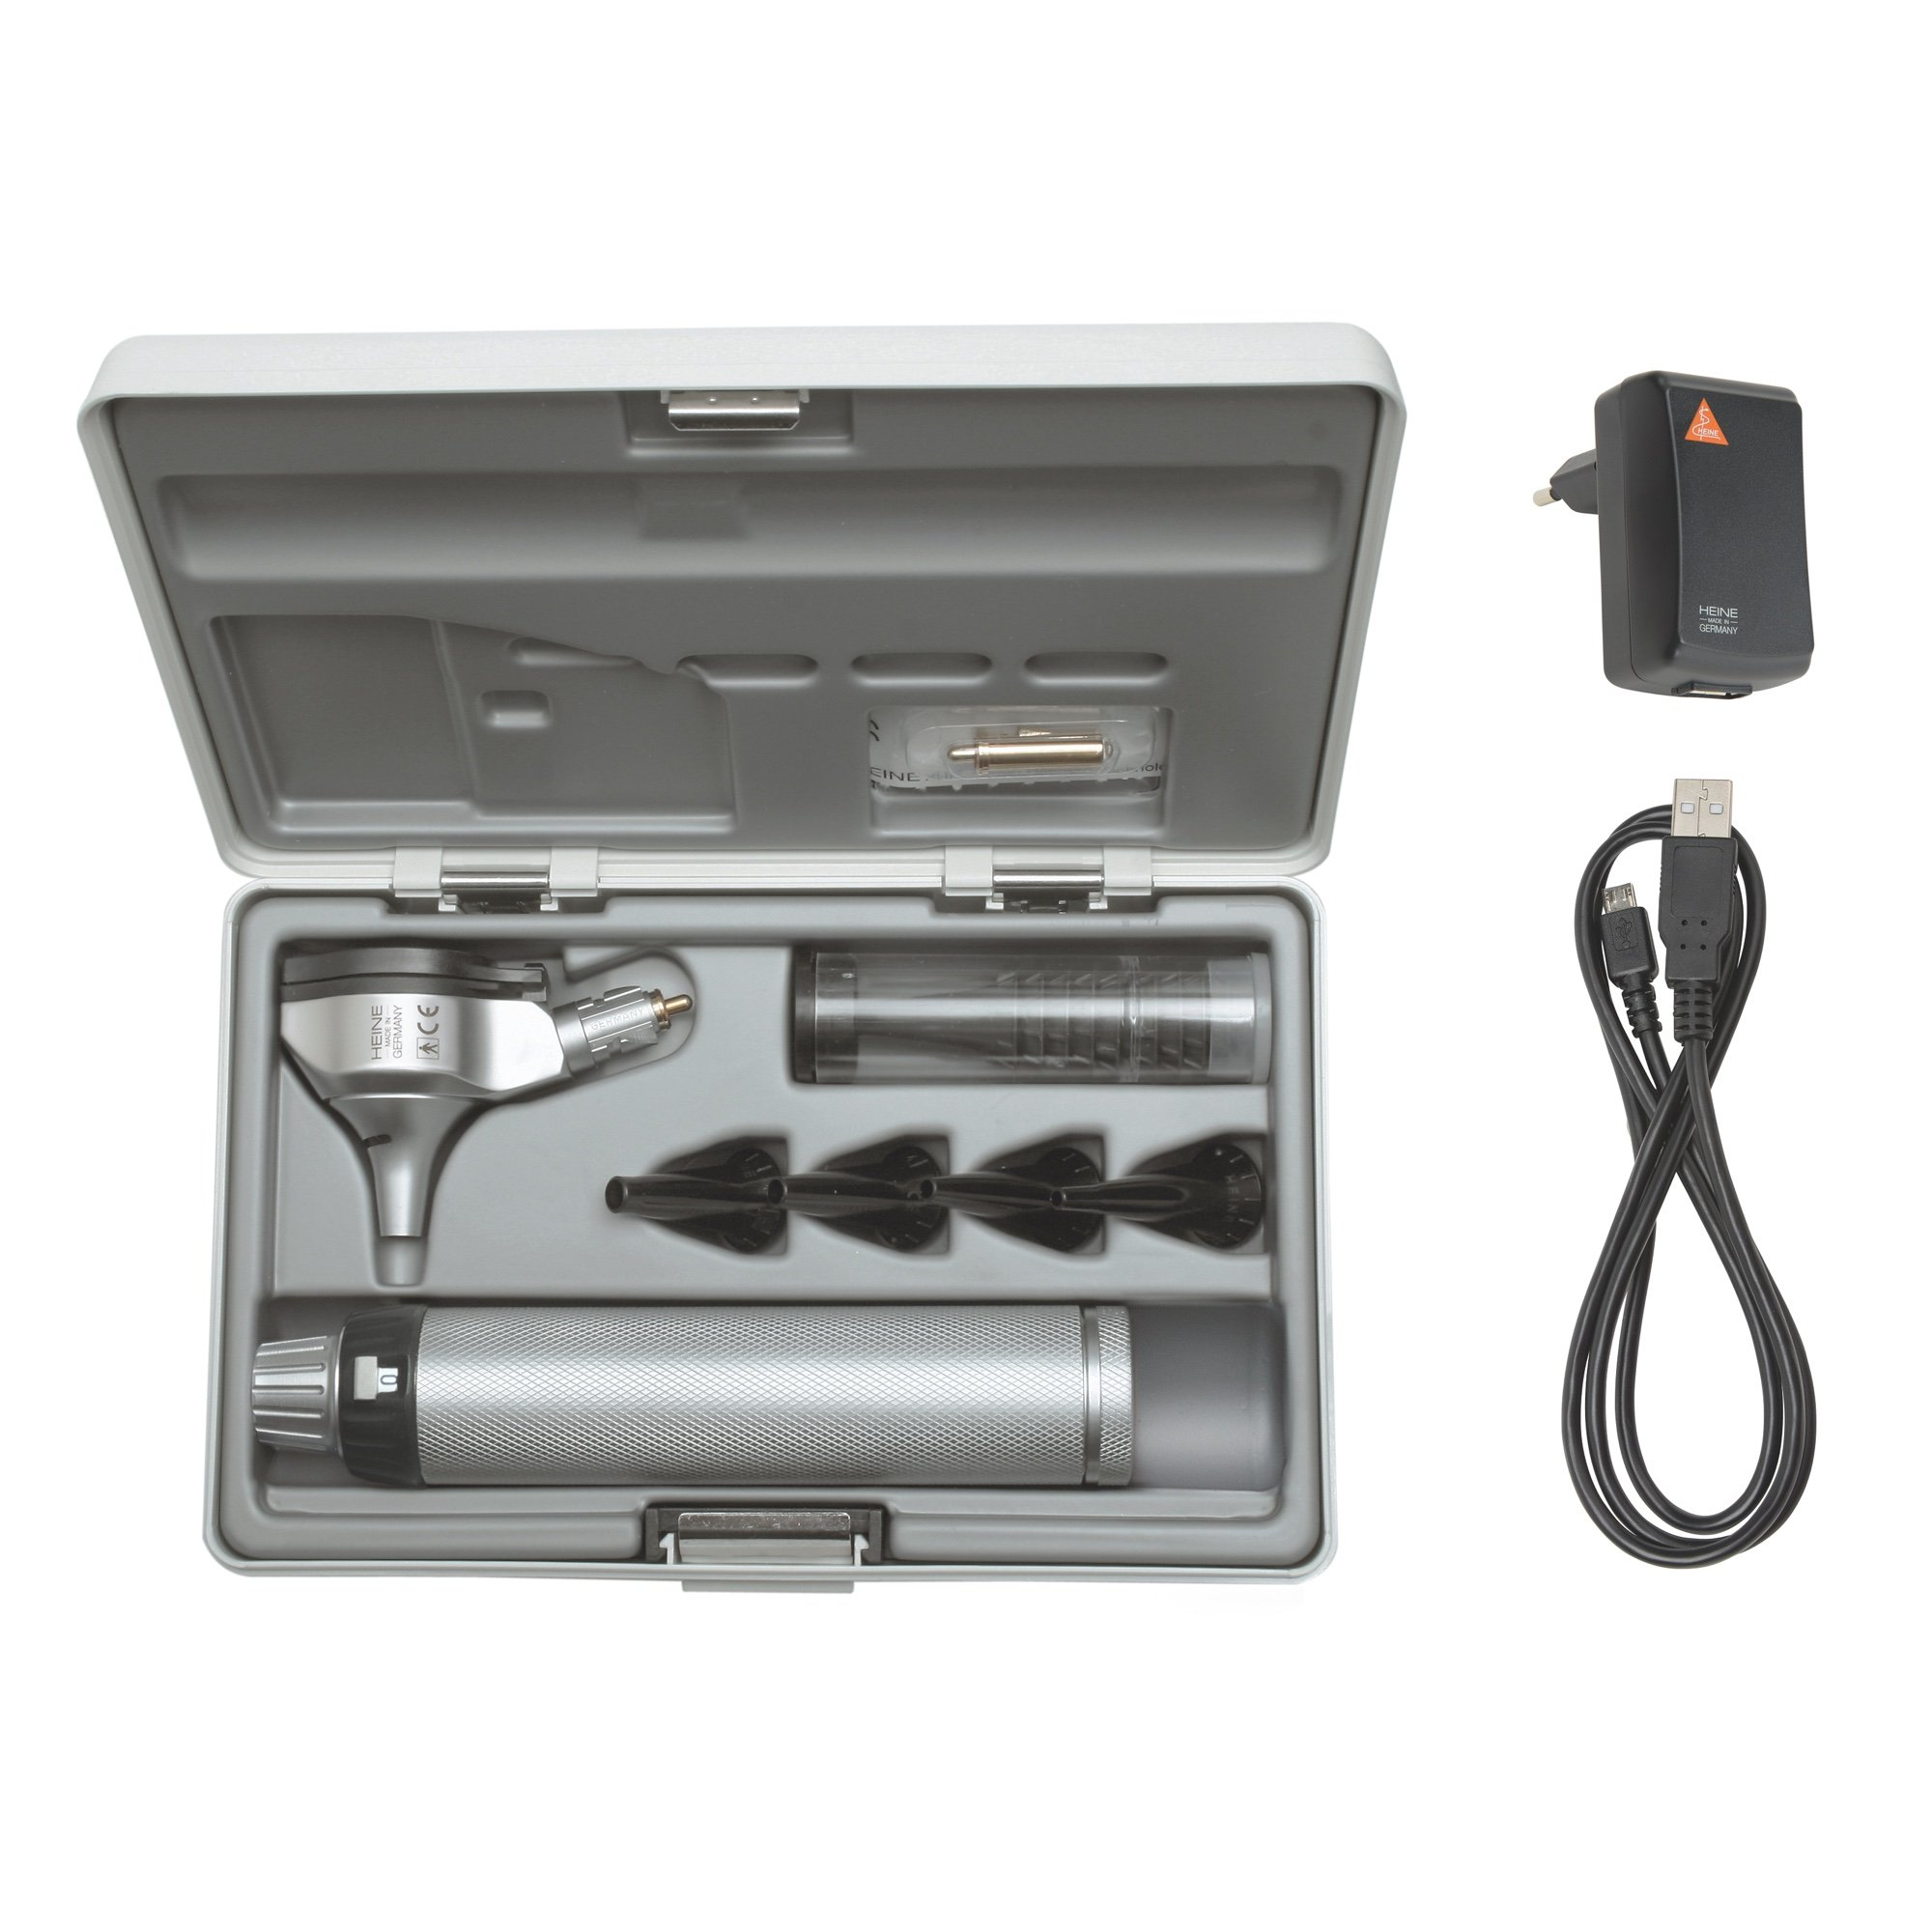 HEINE BETA 200 F.O Otoscope Set with BETA4 USB rechargeable handle